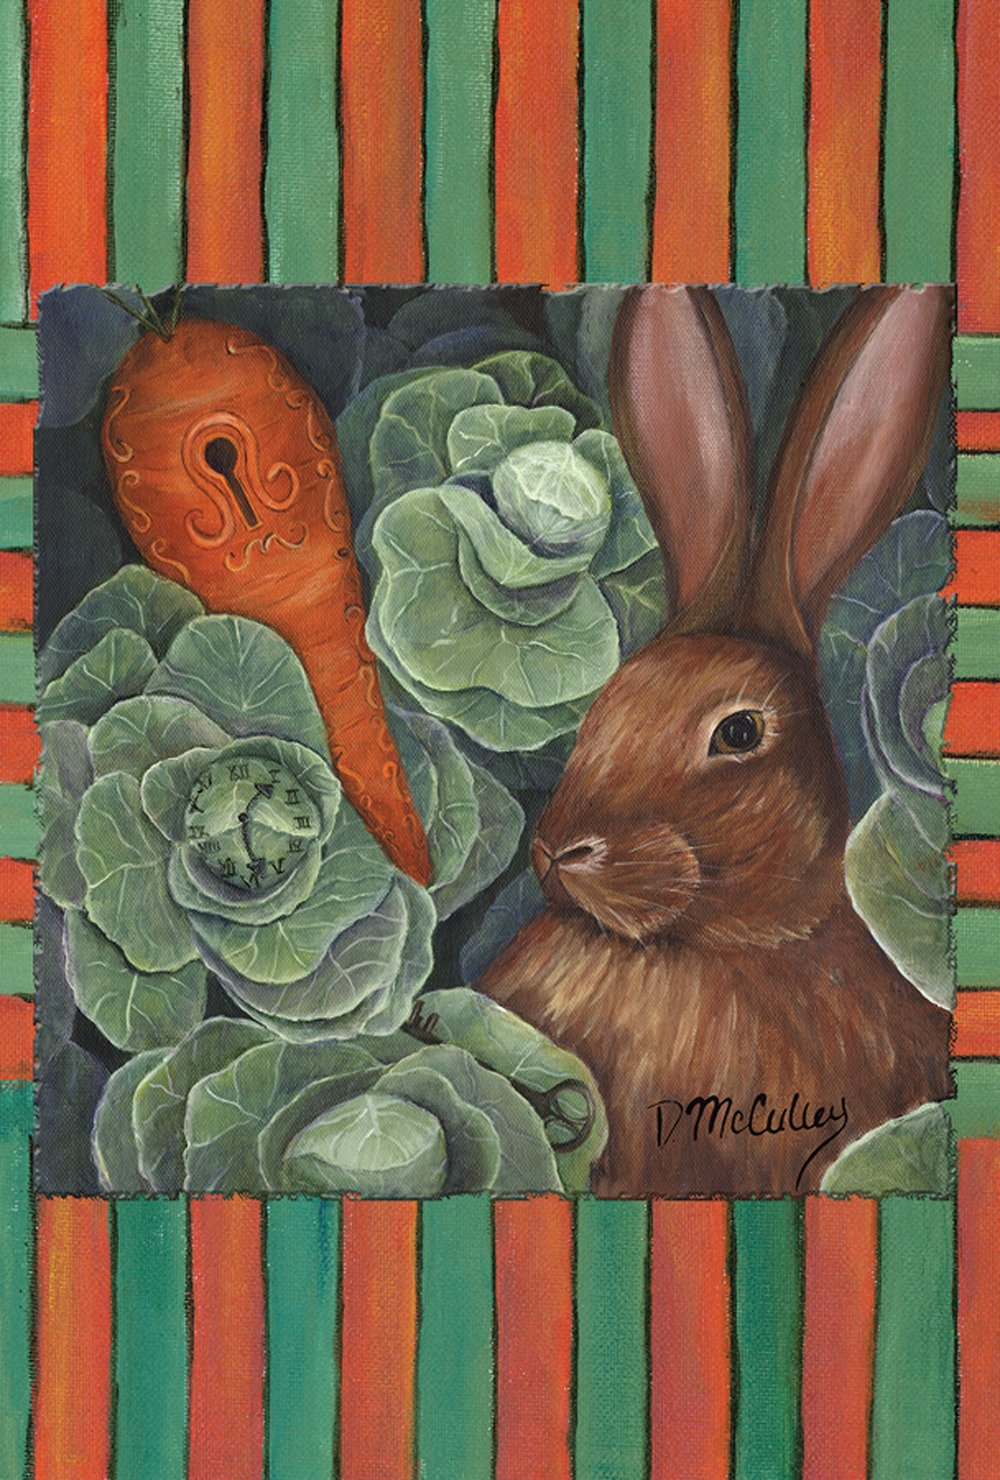 Toland Home Garden Late For A Date Bunny 12.5 x 18 Inch Decorative Spring Cabbage Carrot Keyhole Wonderland Rabbit Garden Flag